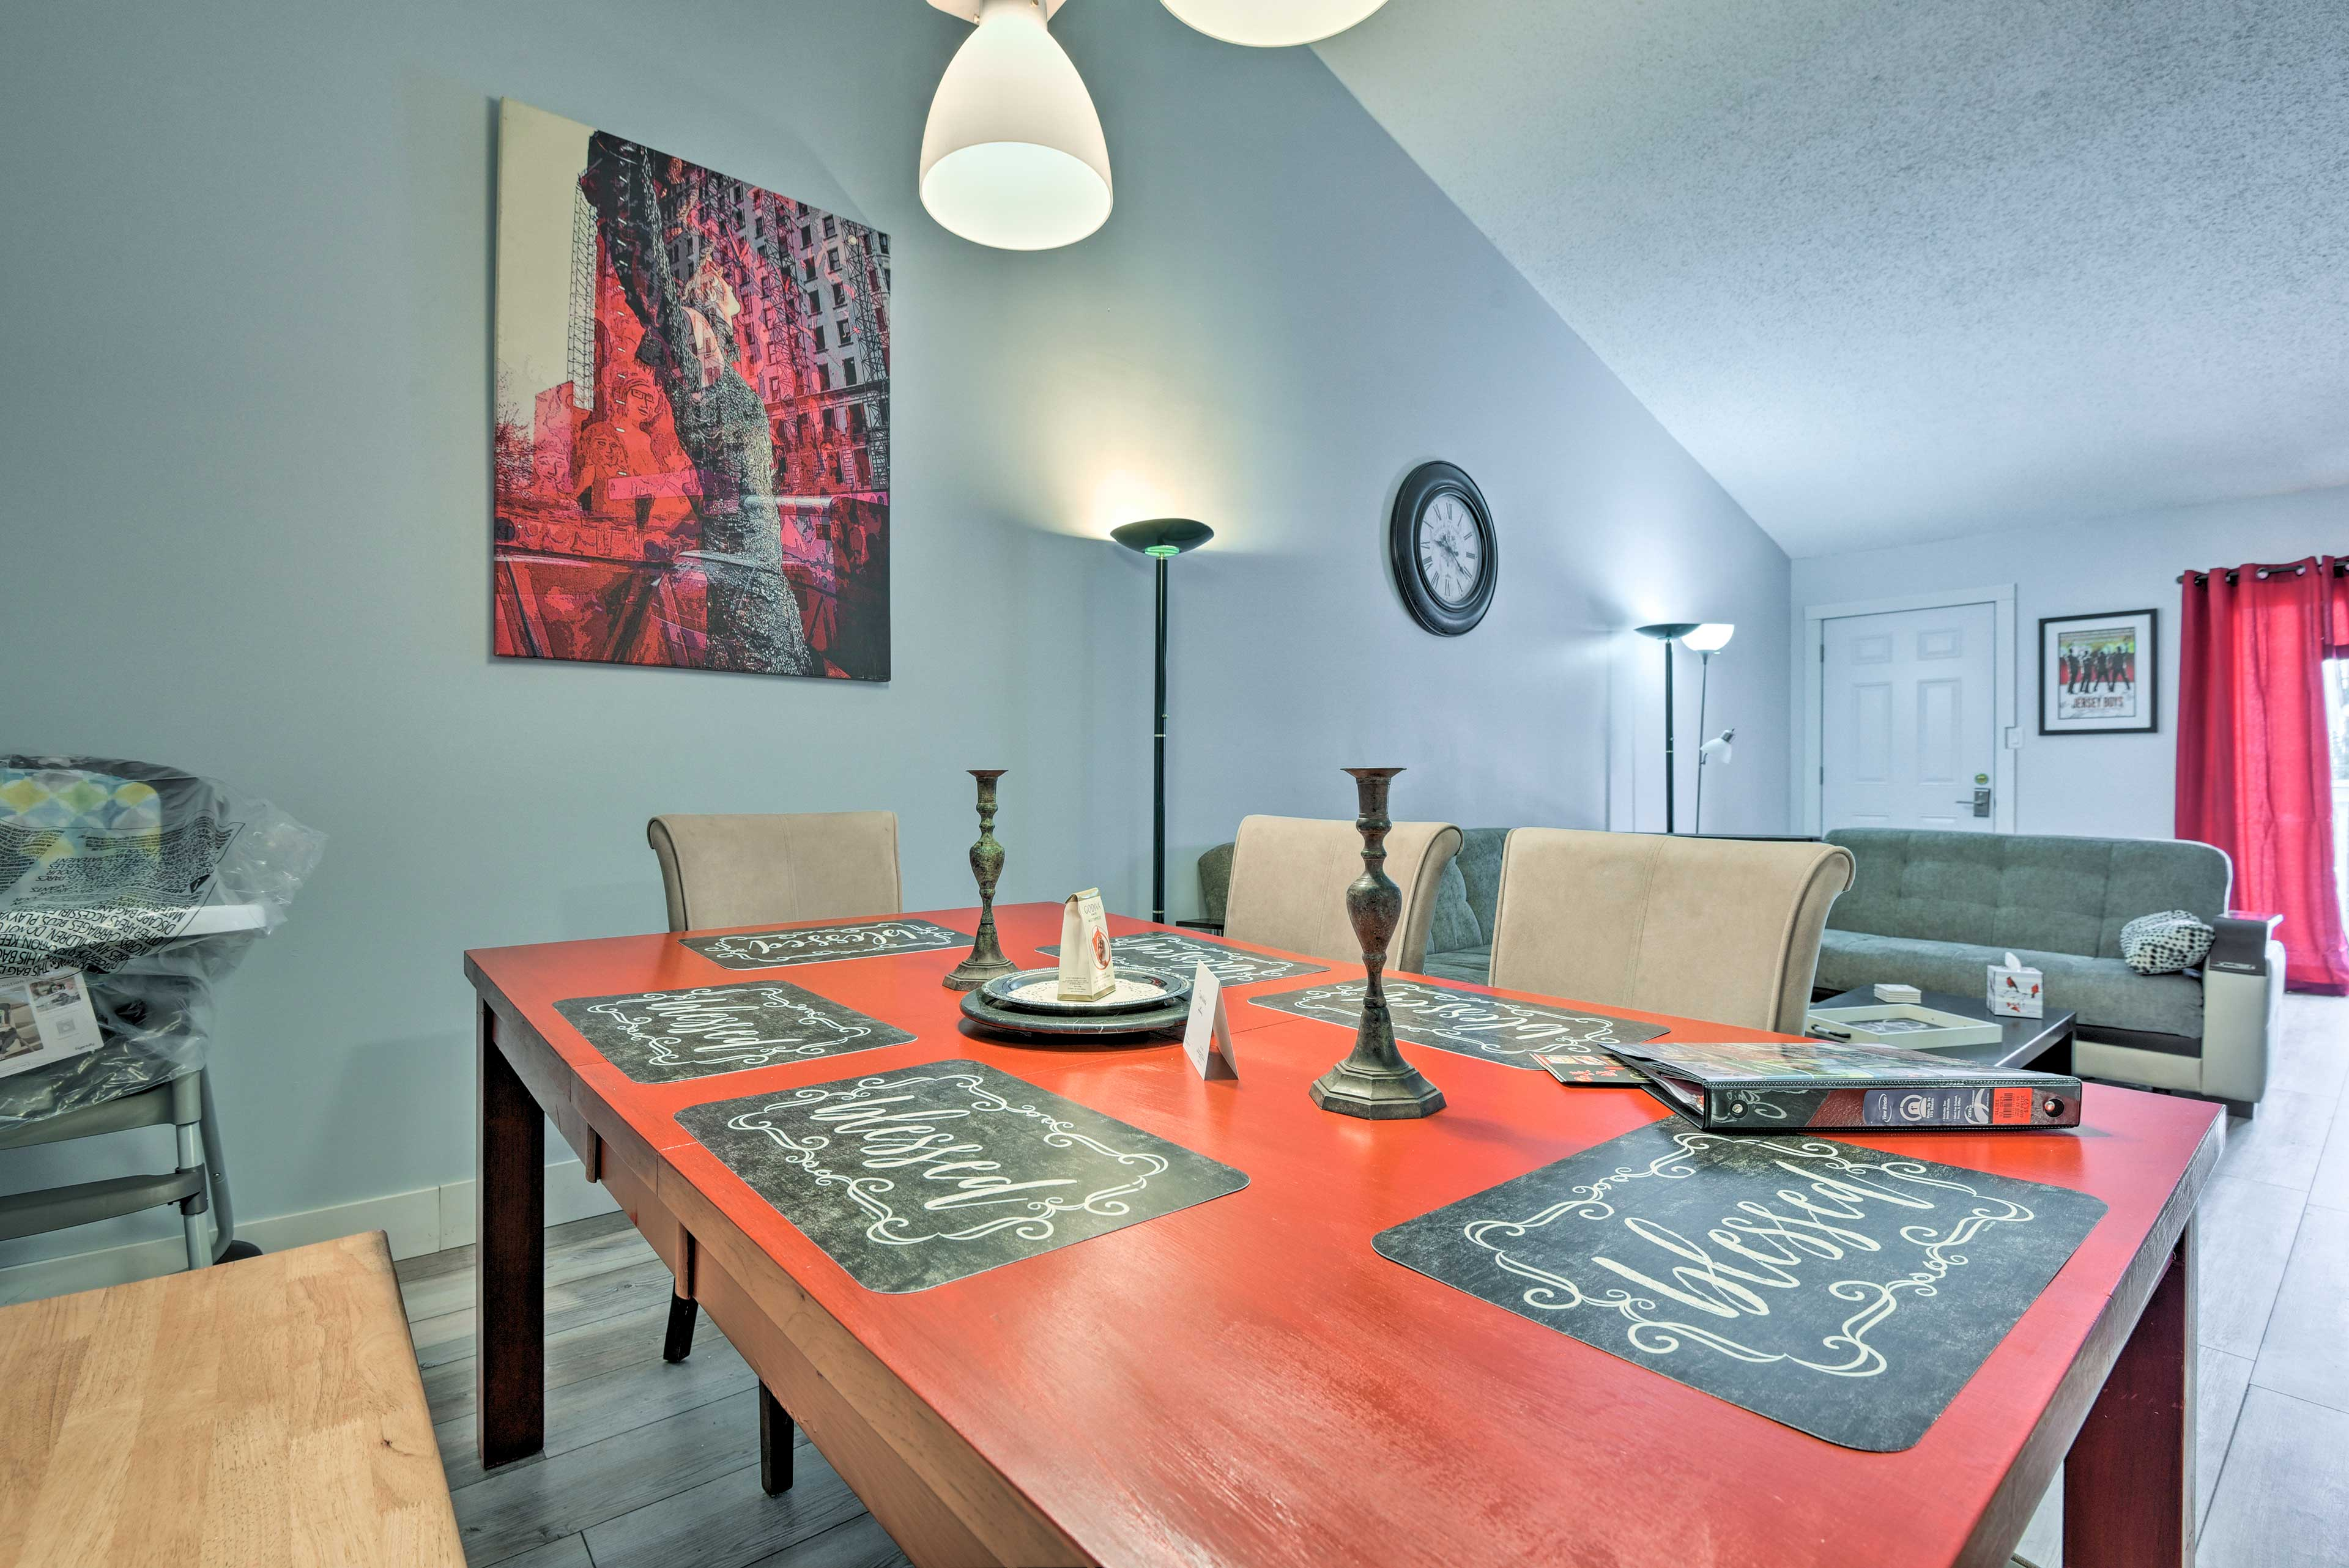 You'll be mere steps from the living area as you wine and dine.